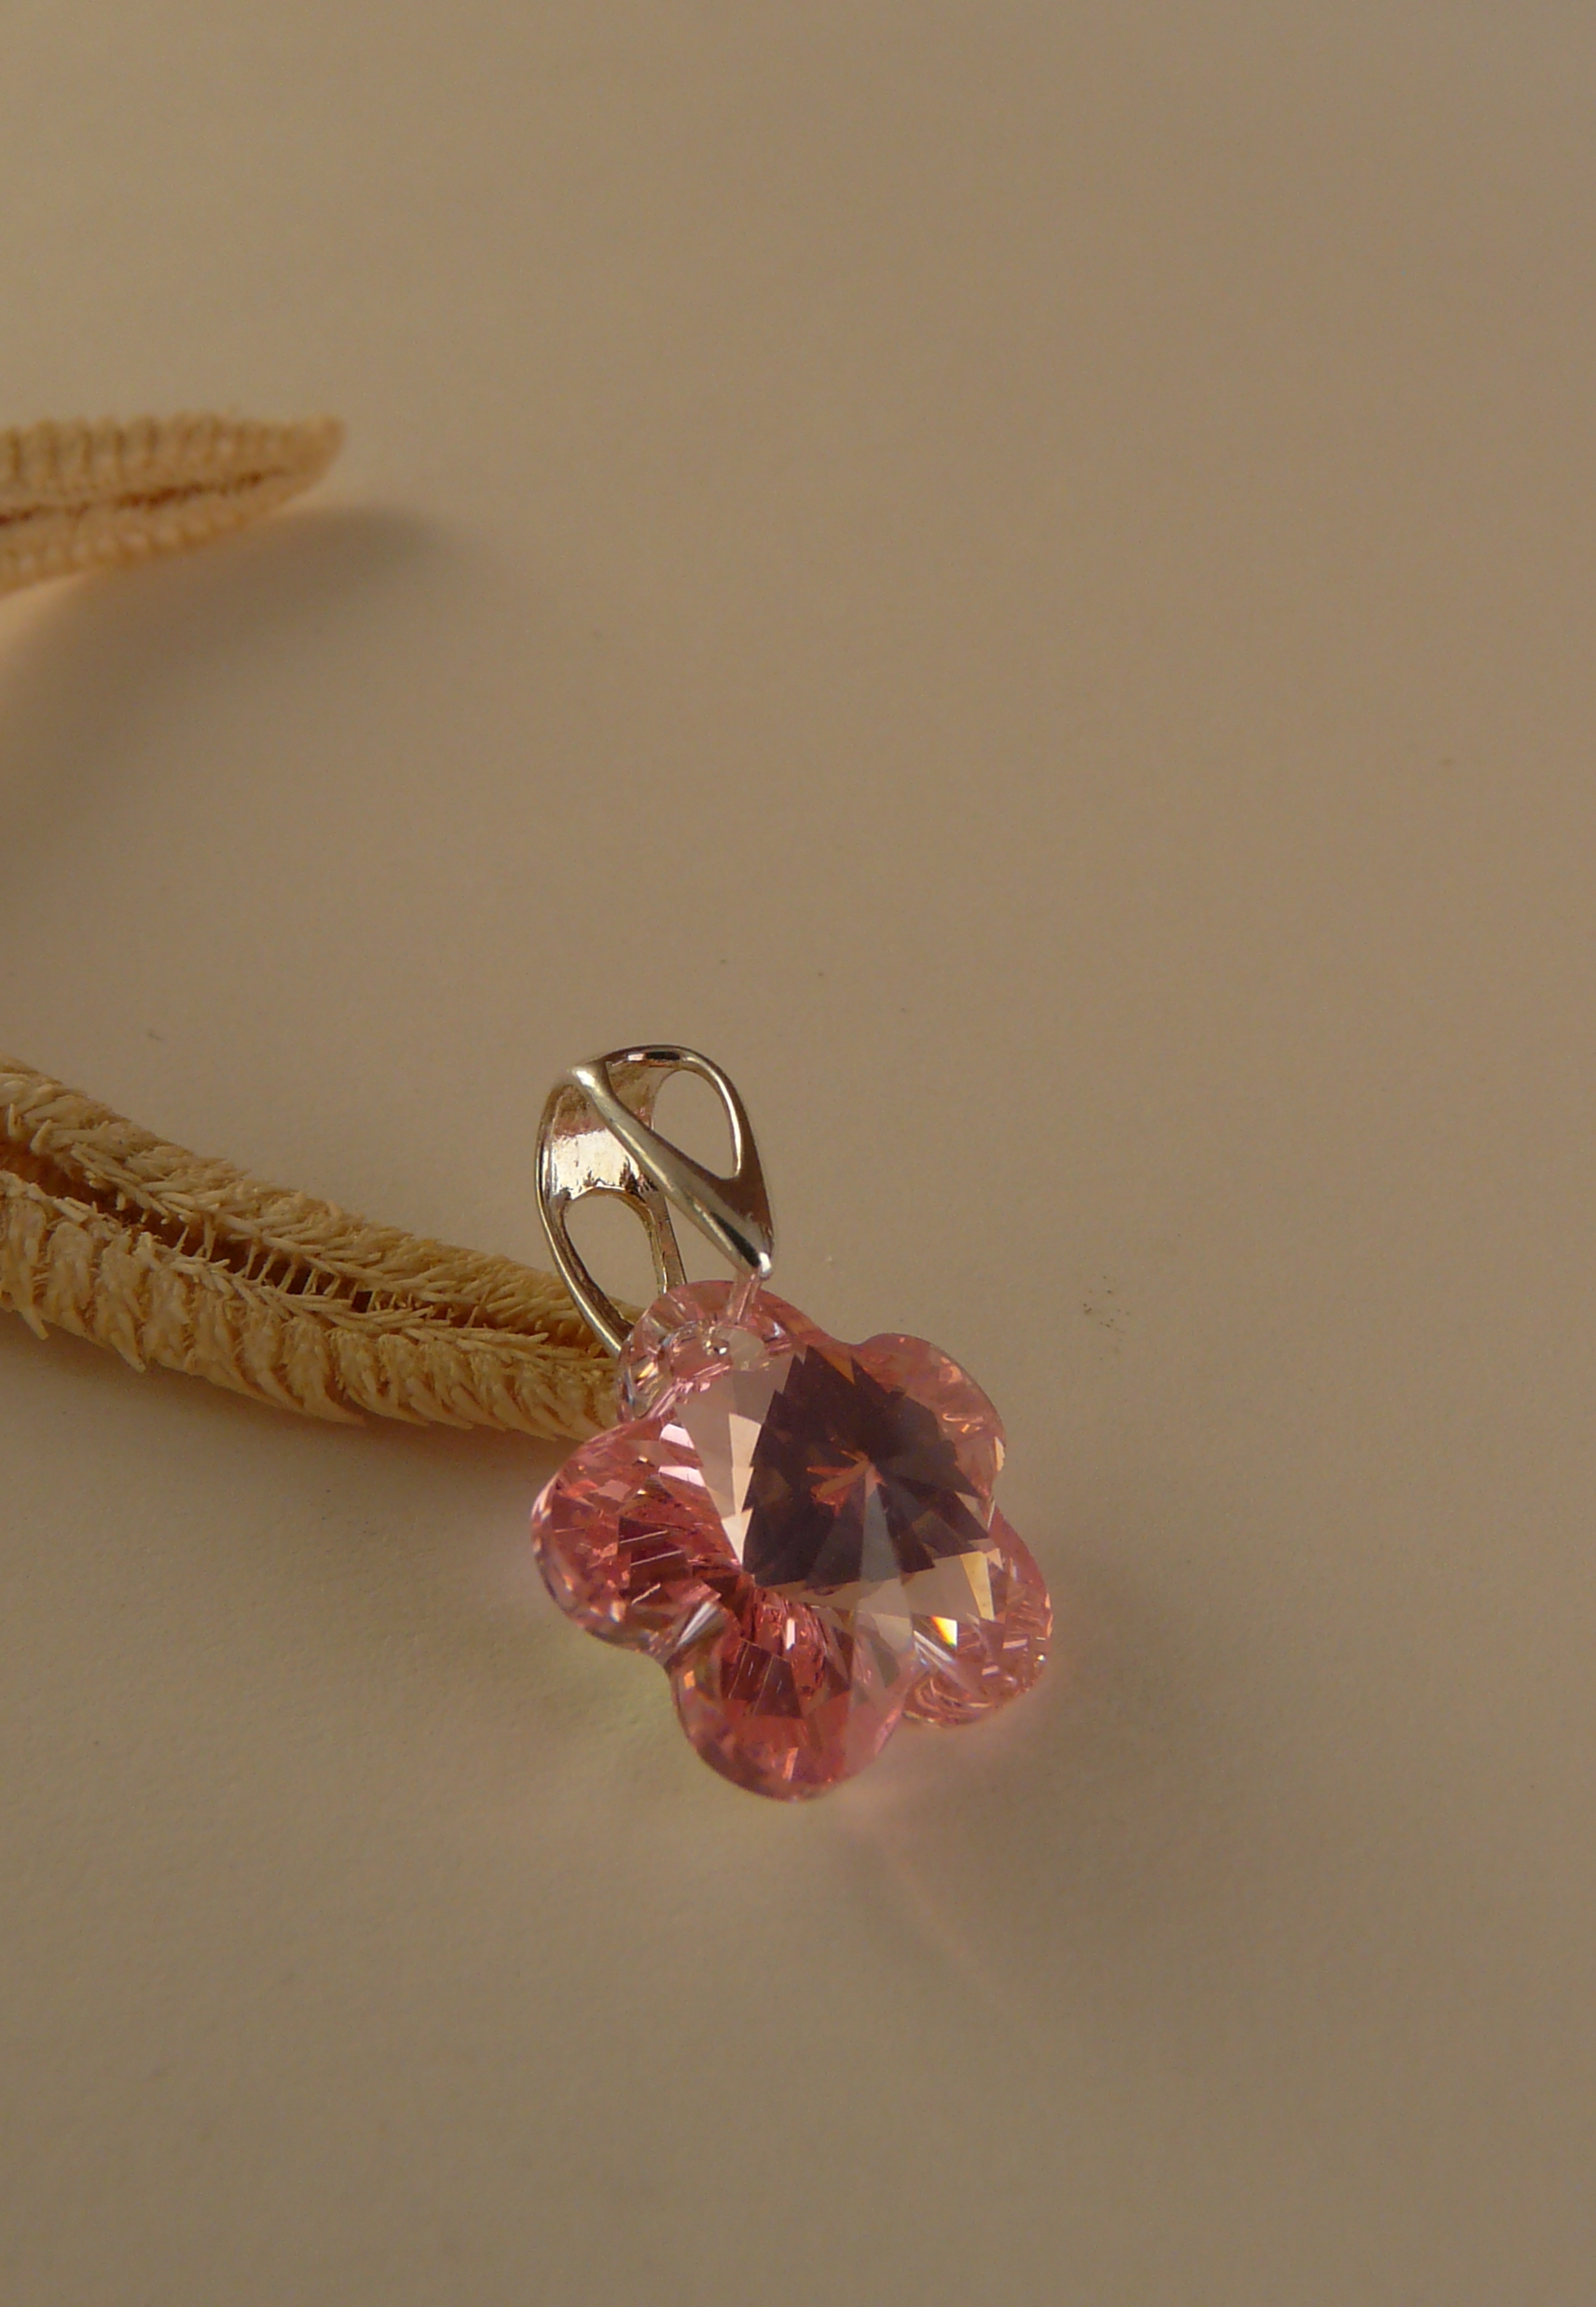 Prívesok Flower Light Rose Swarovski Elements sw074 striebro 925 0,32g